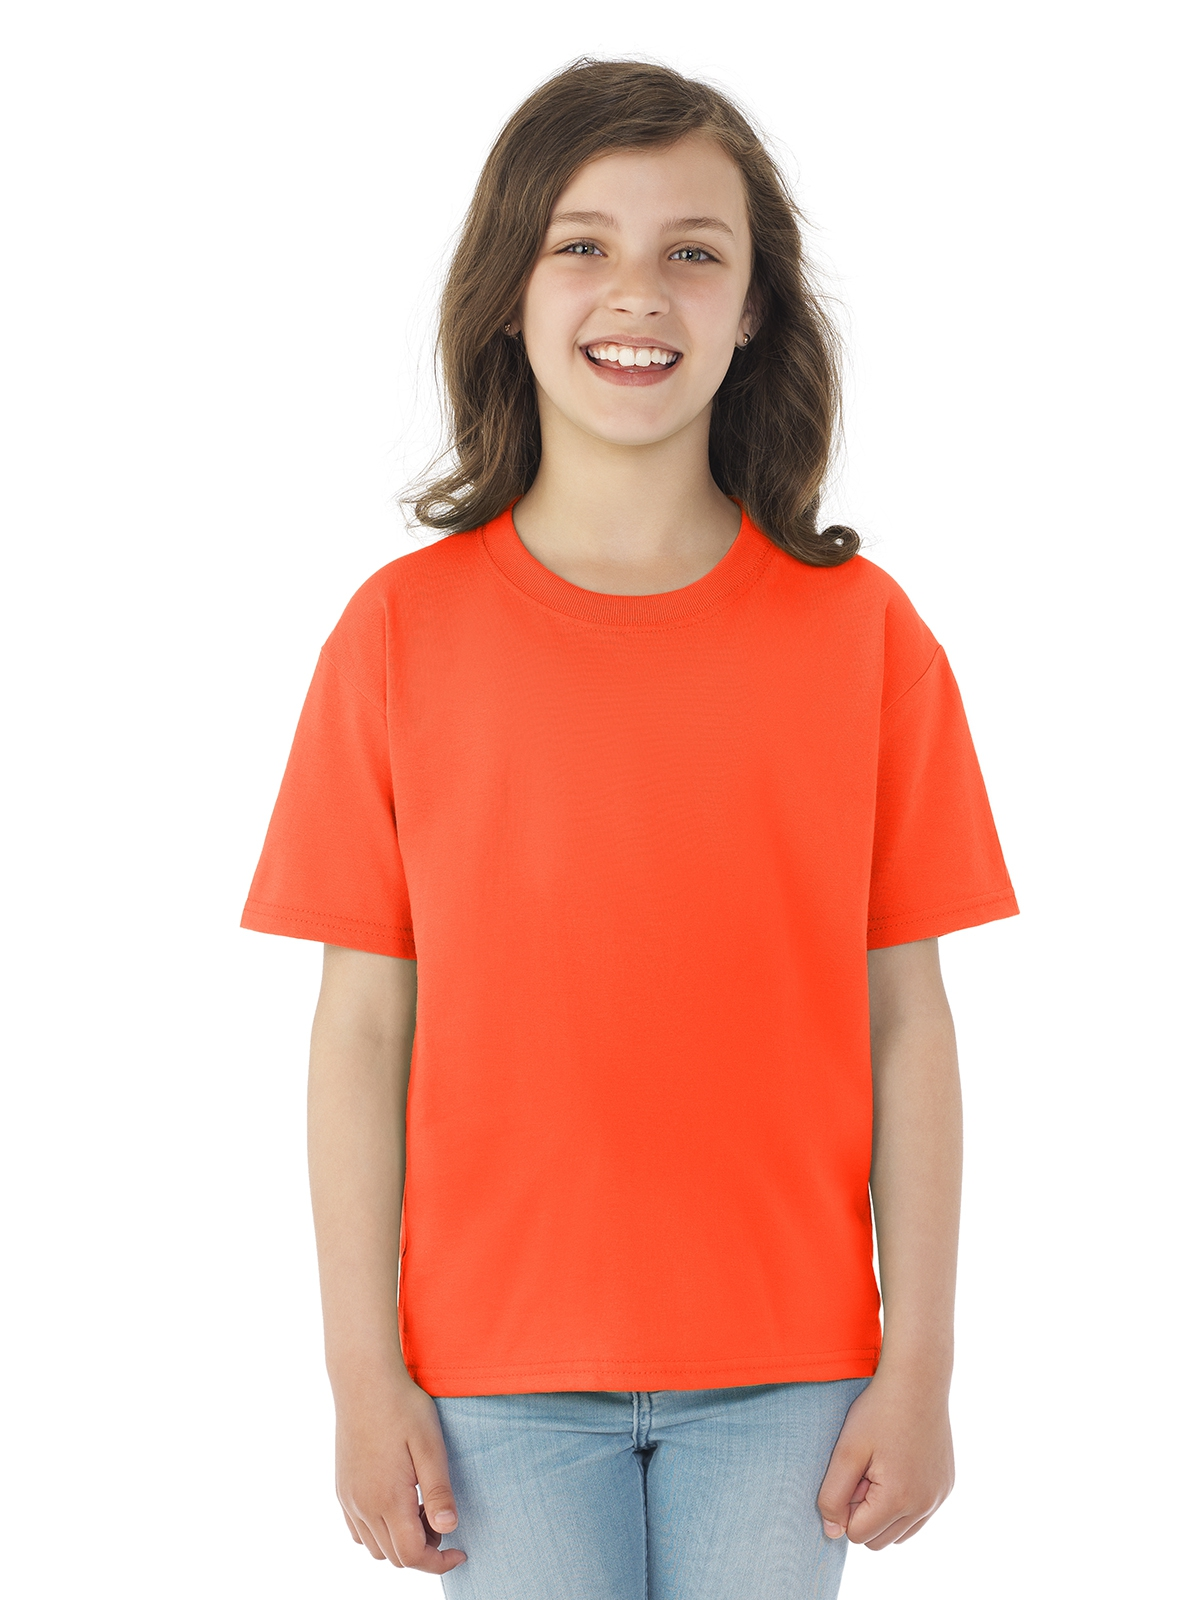 Fruit of the Loom 3930BR HD Cotton™ Youth T-Shirt